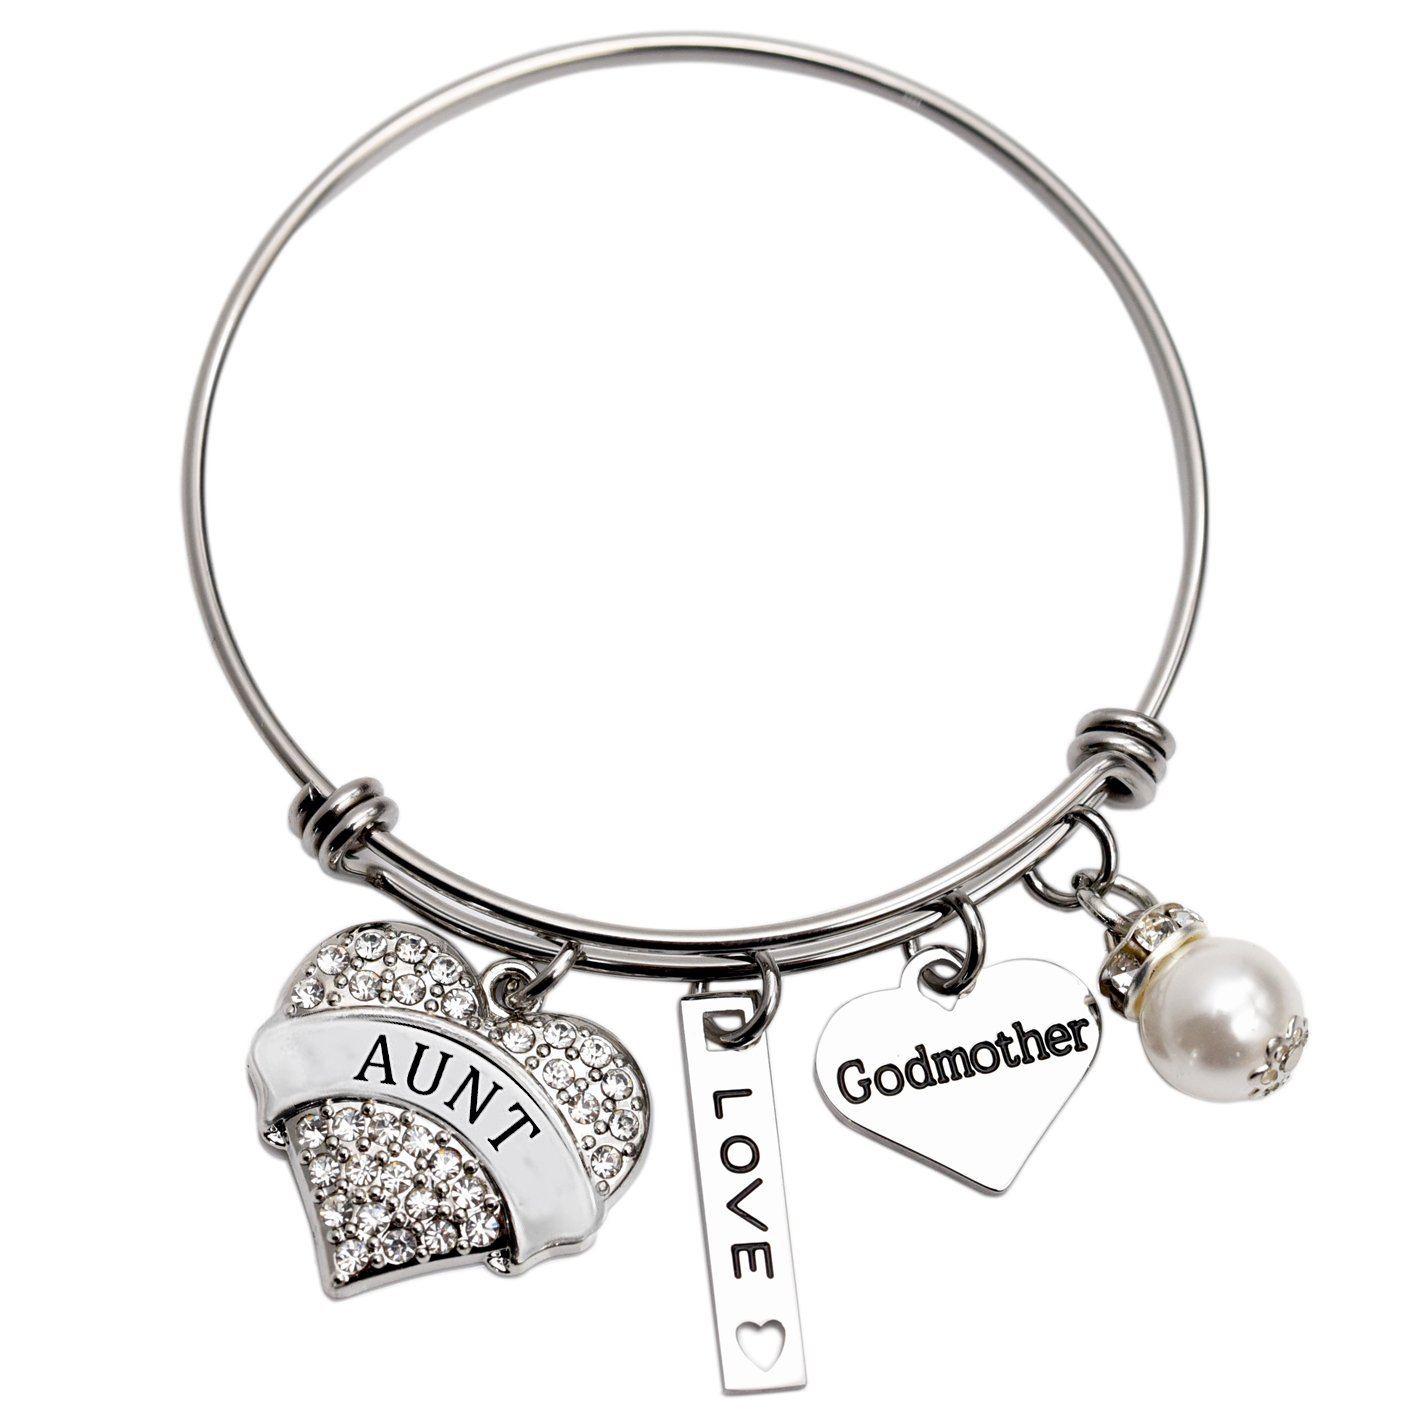 Aunt Godmother Bangle Bracelet Stainless Steel (White)